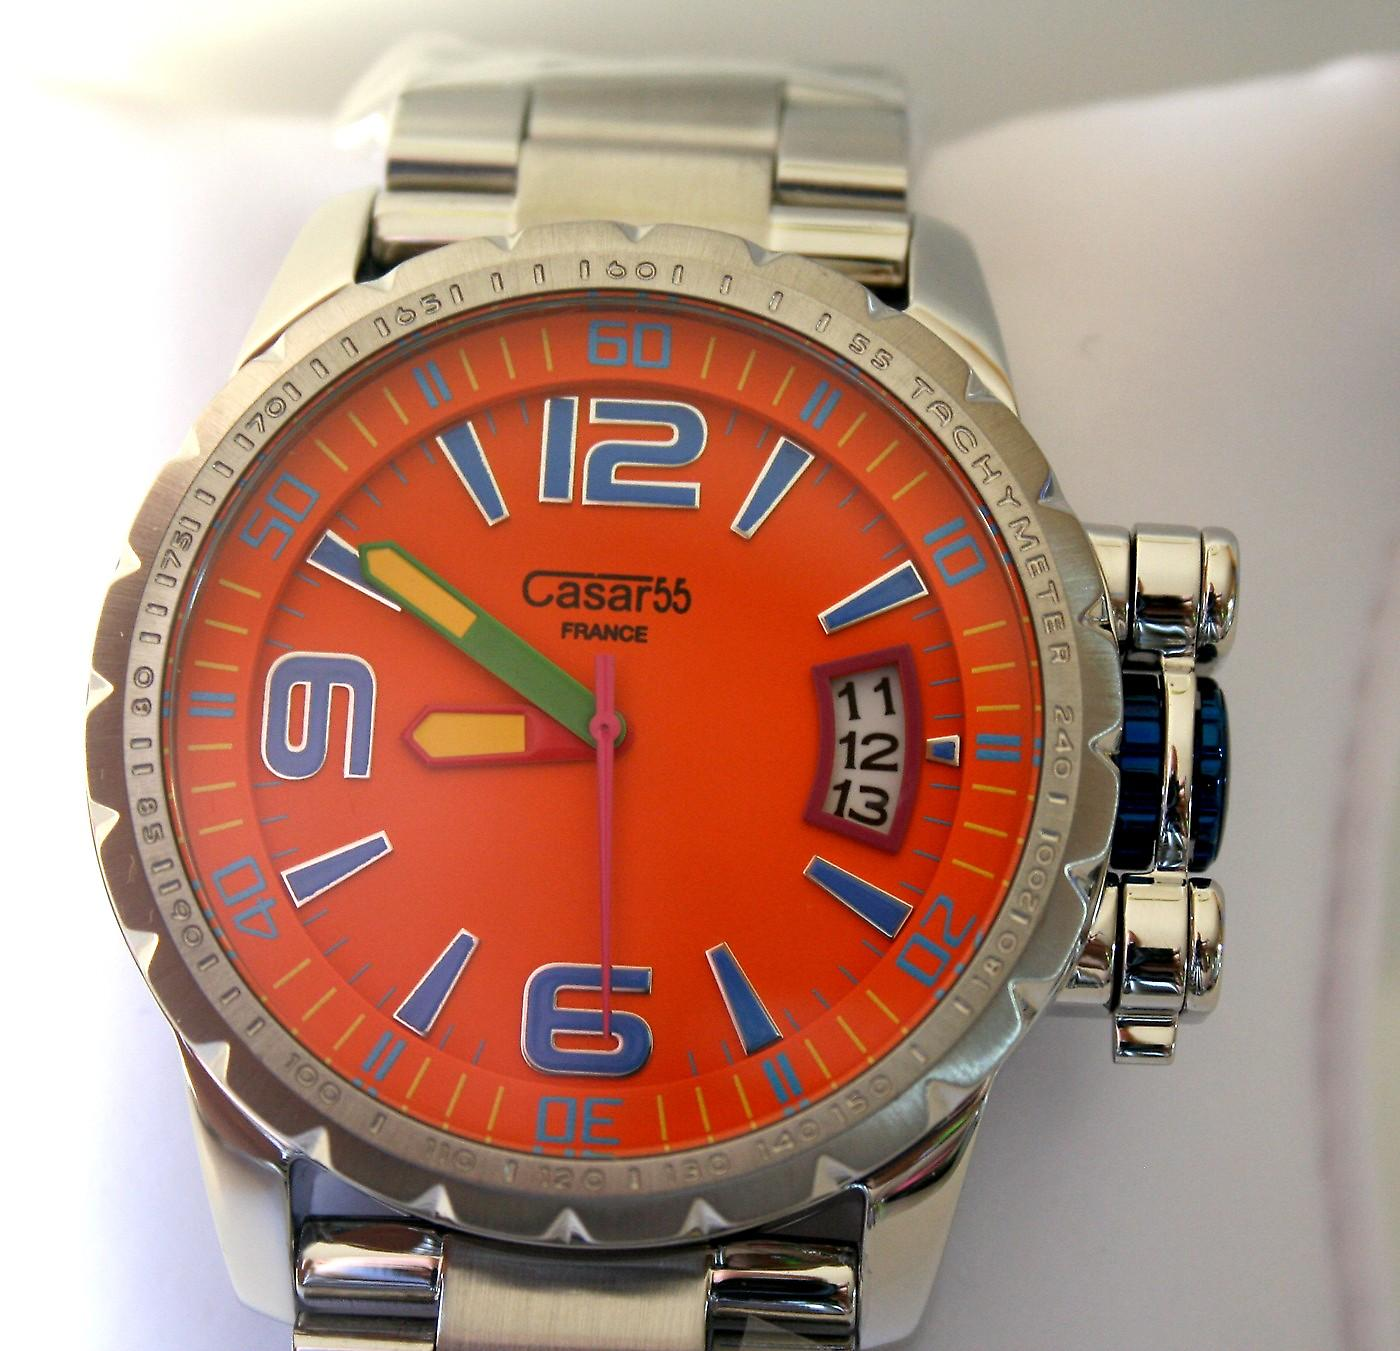 Waooh - Watches - Casar55 Z684g